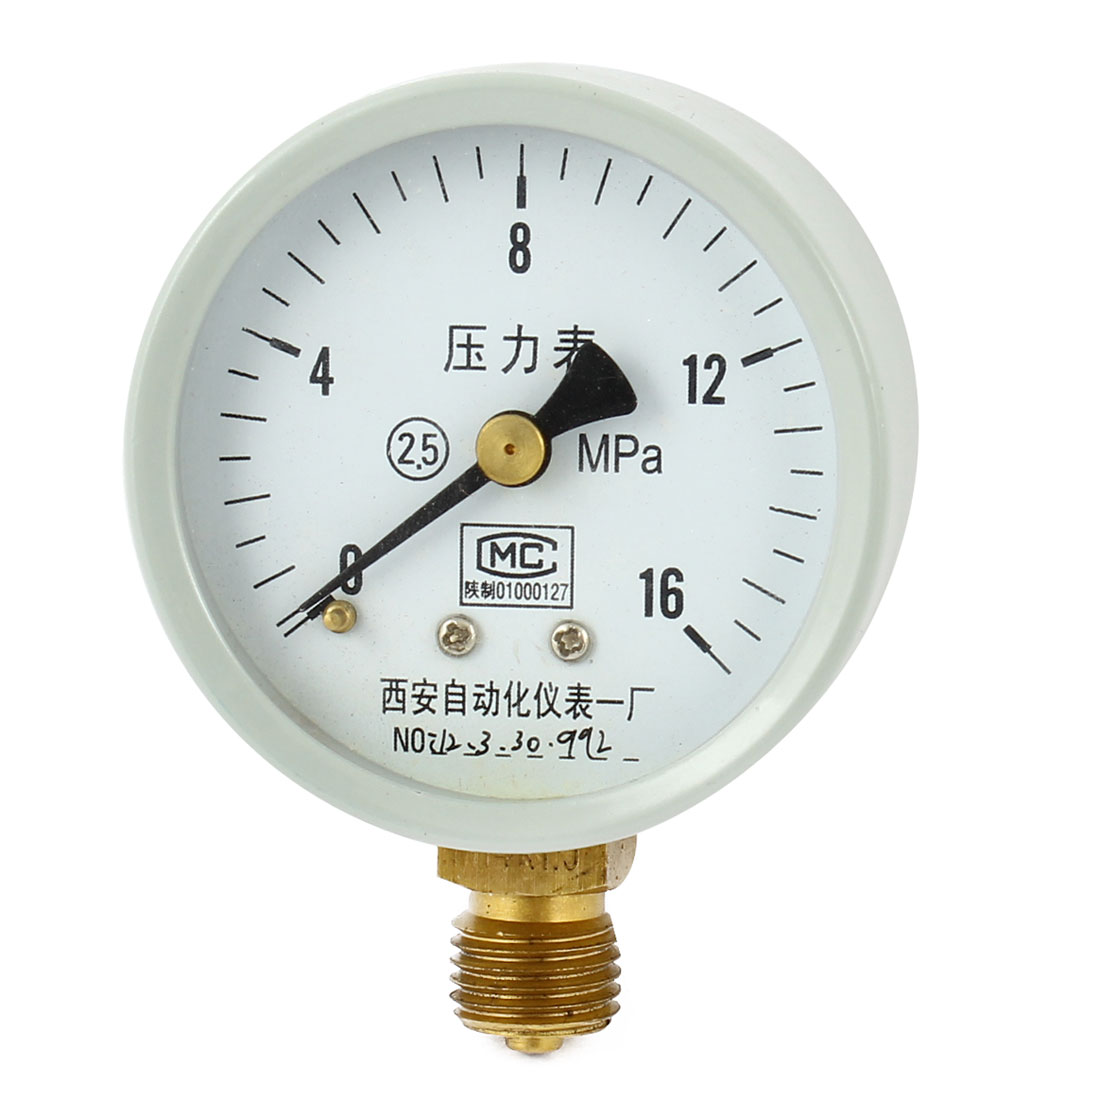 1/4PT Male Threaded 0-16Mpa Pneumatic Air Pressure Measuring Gauge Light Gray